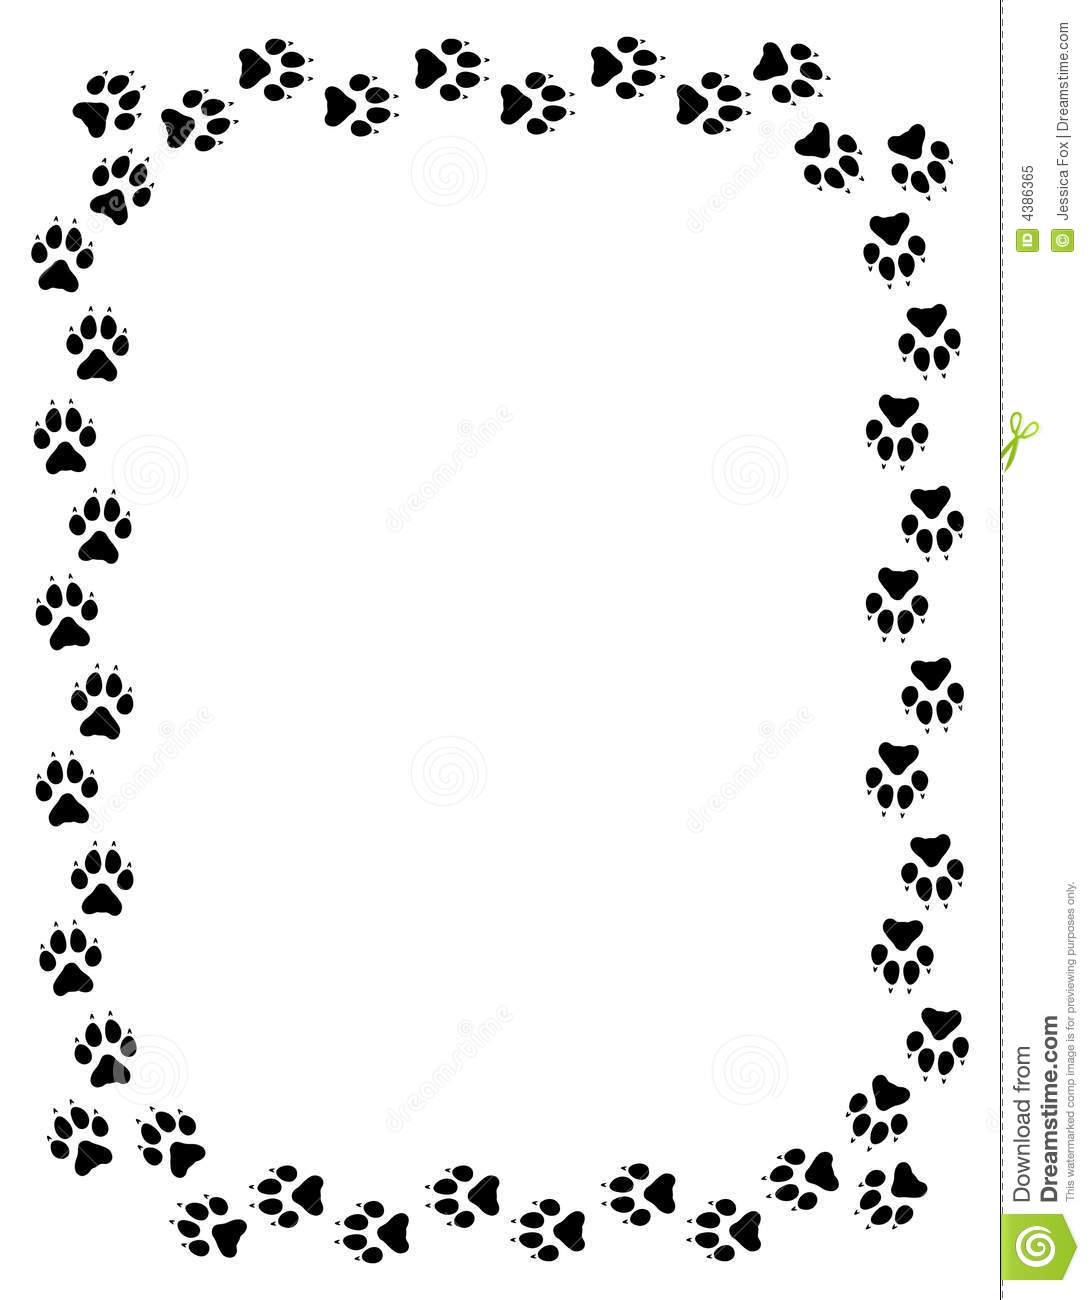 Wolf Paw Print Border Royalty Free Stock Photo - Image: 4386365